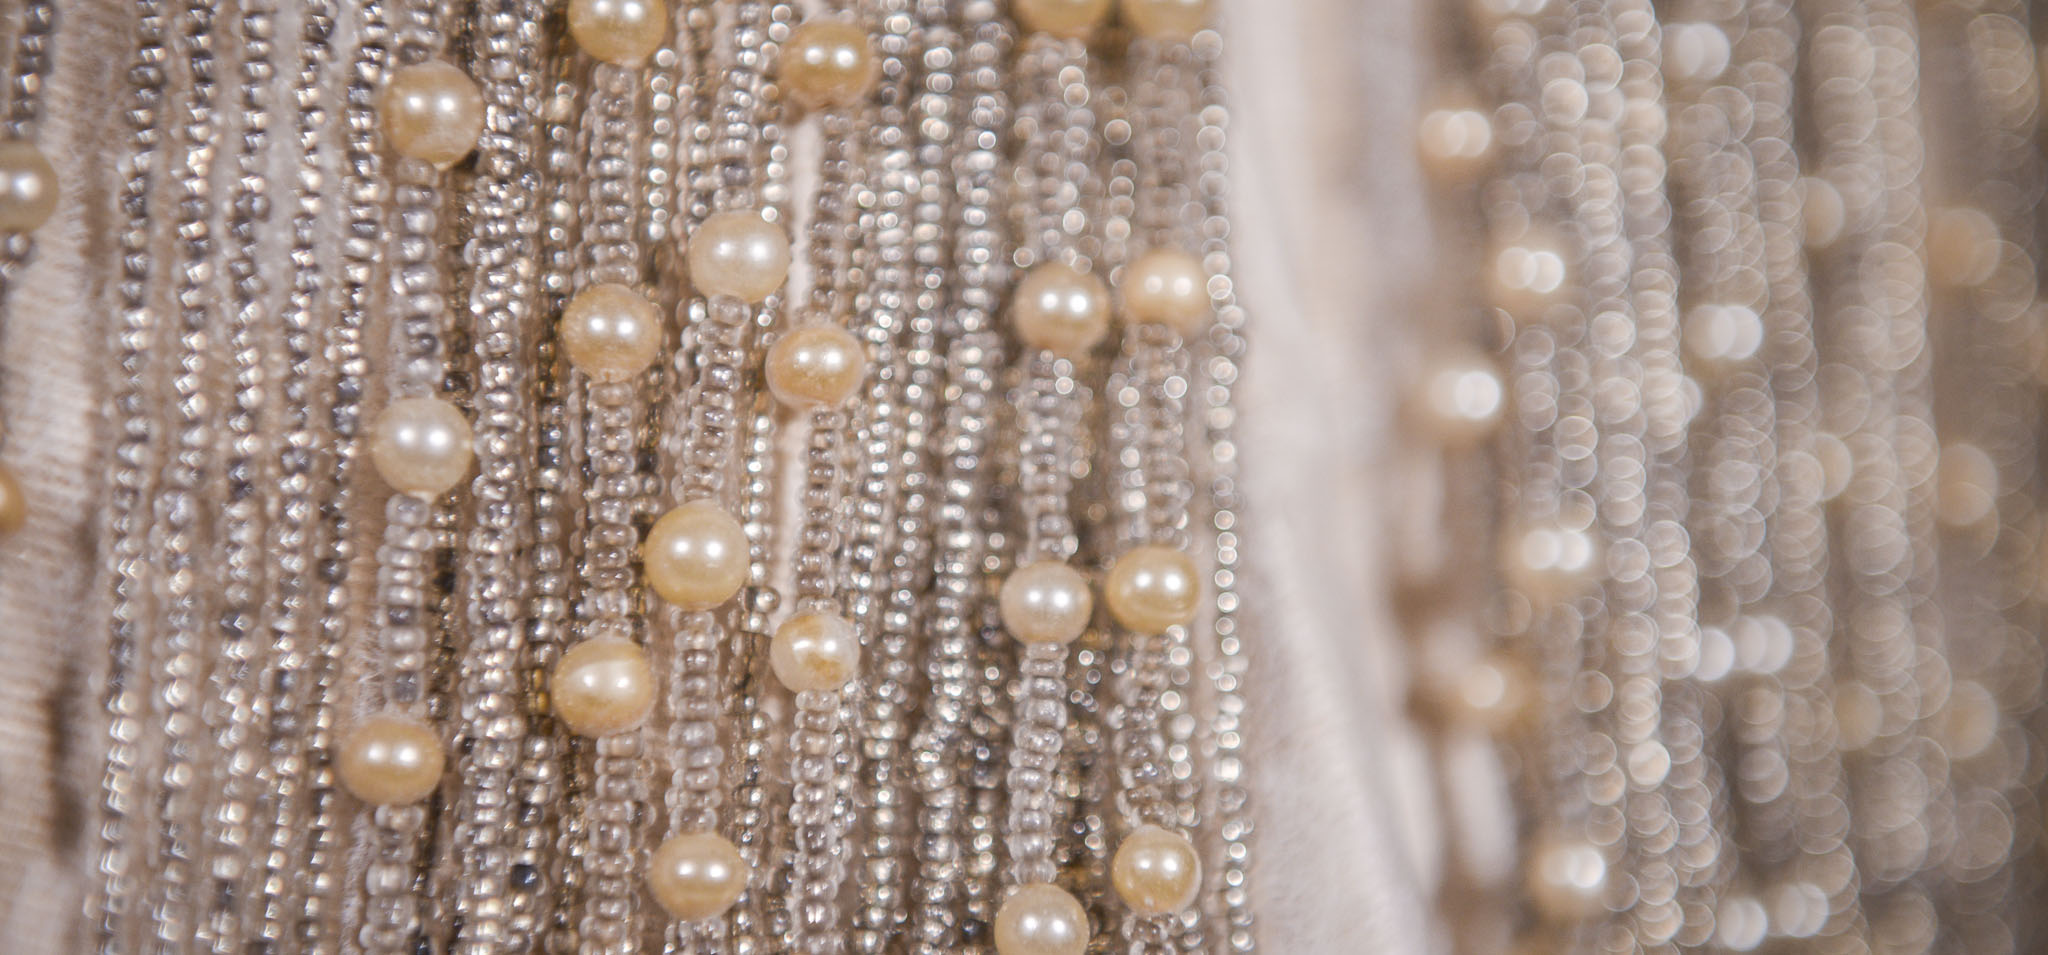 Photographic image of lots of strings of pearls and beads.